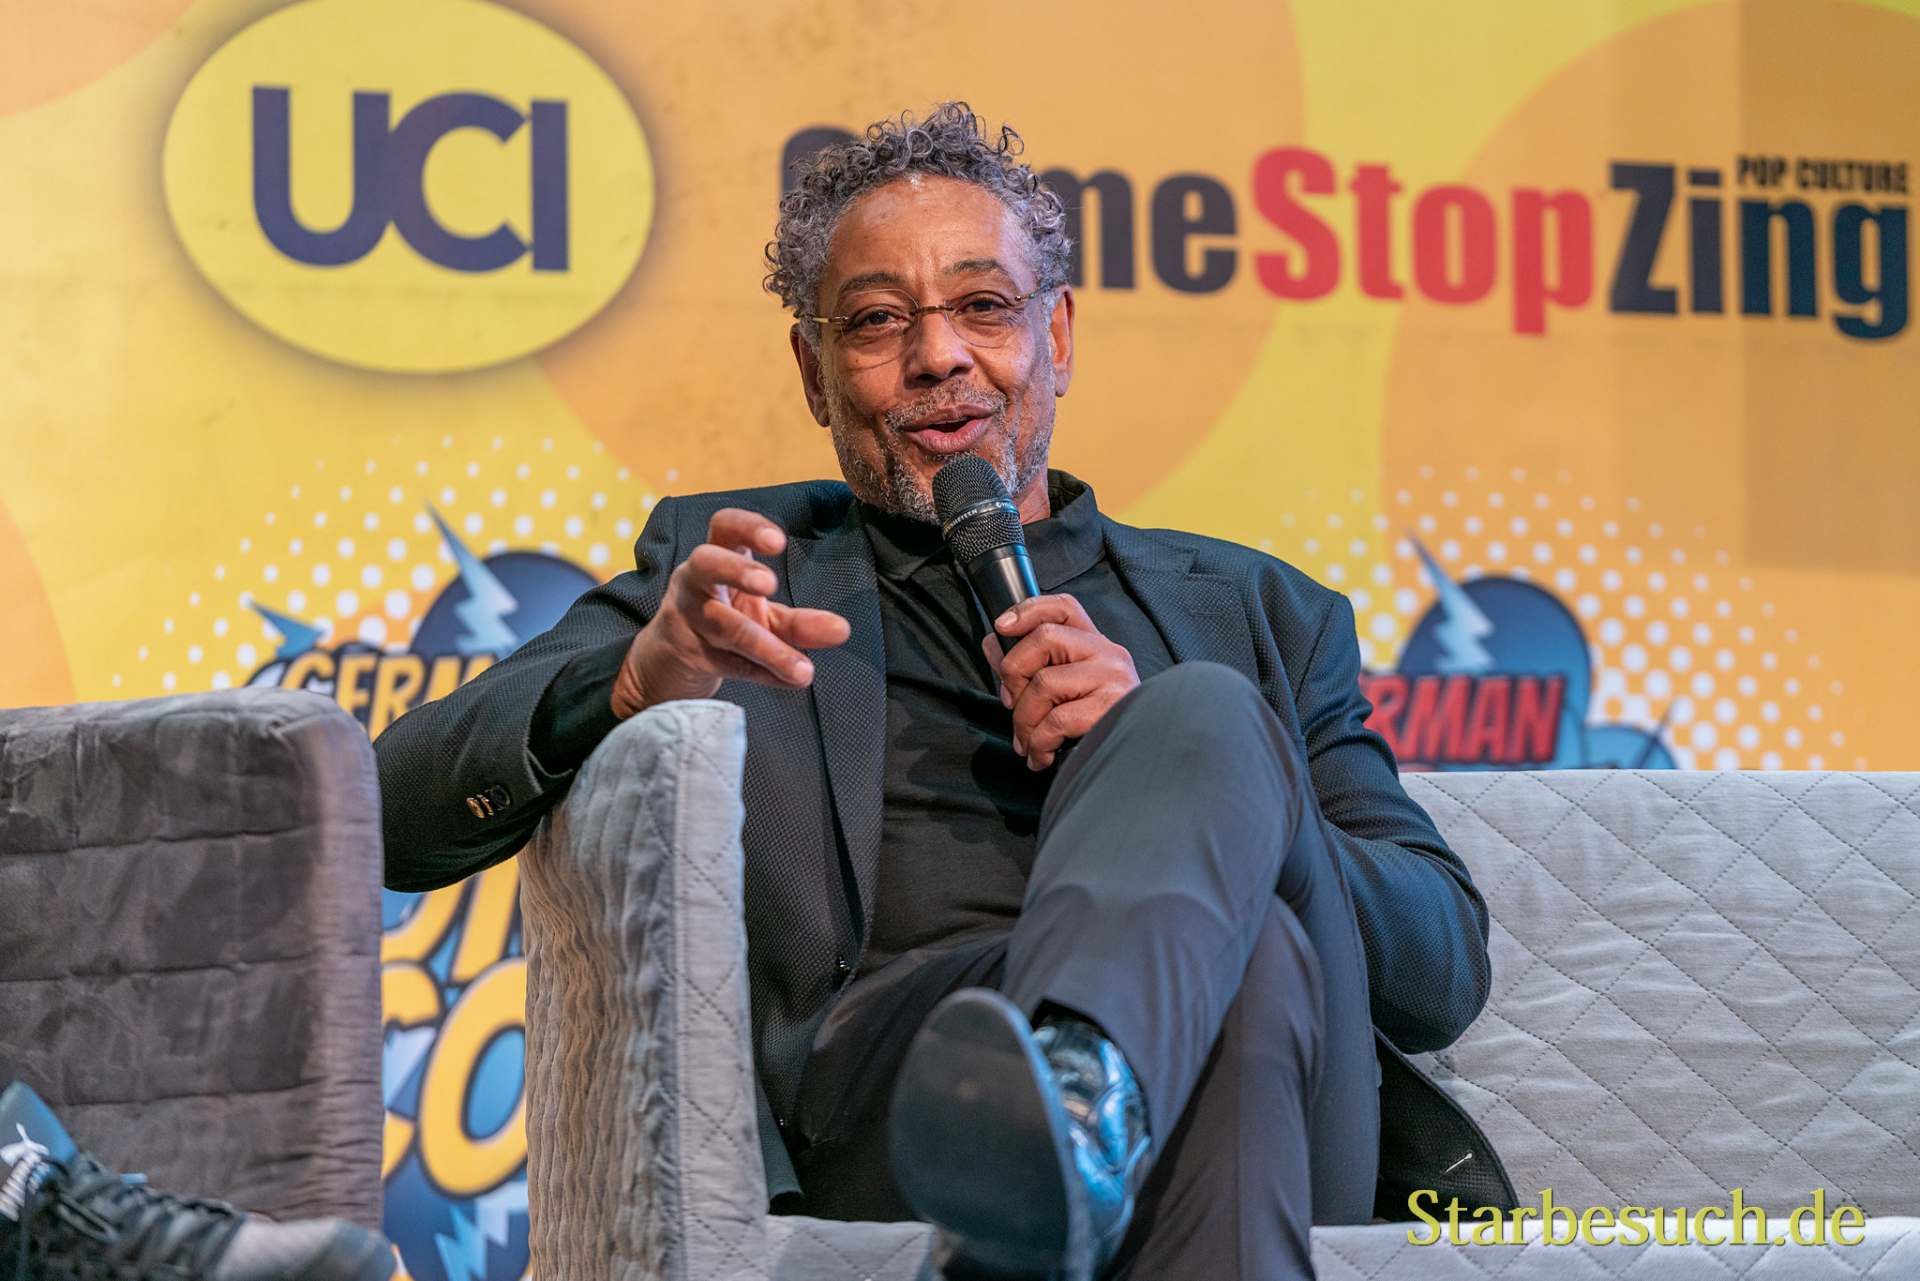 DORTMUND, GERMANY - December 8th 2019: Giancarlo Esposito at German Comic Con Dortmund